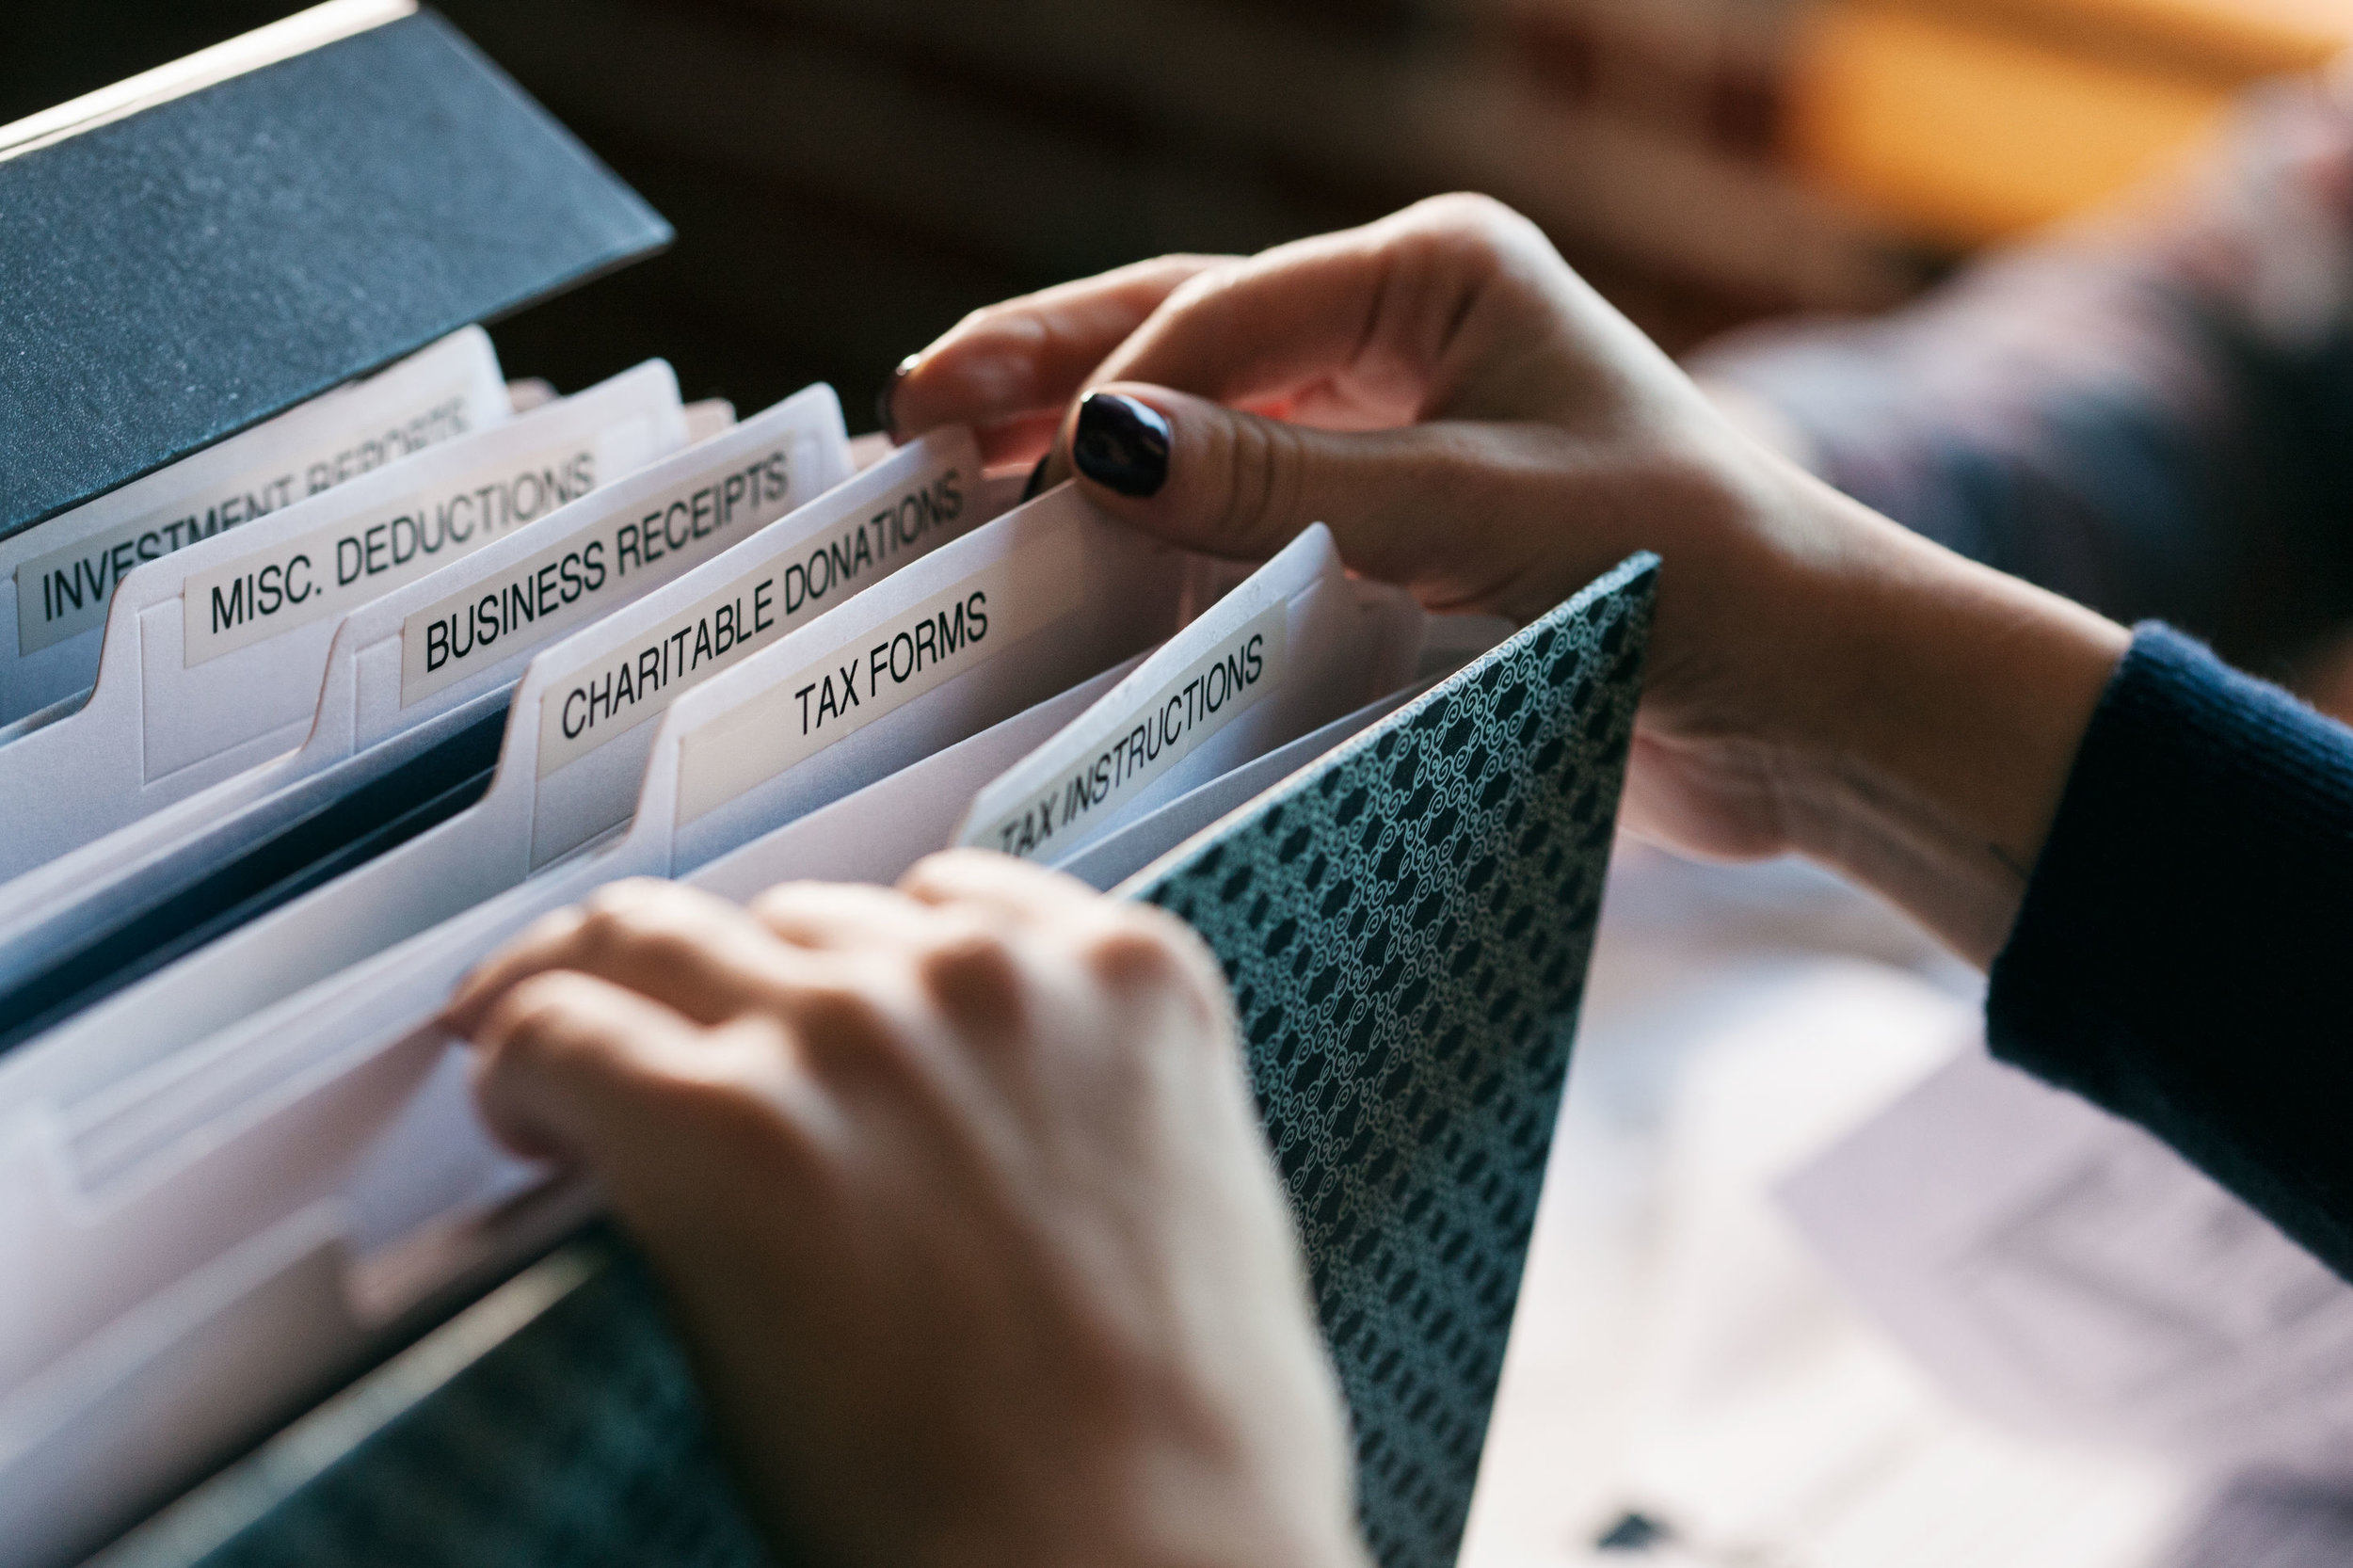 Taxes: Woman Digging Through Tax File Folder For Forms